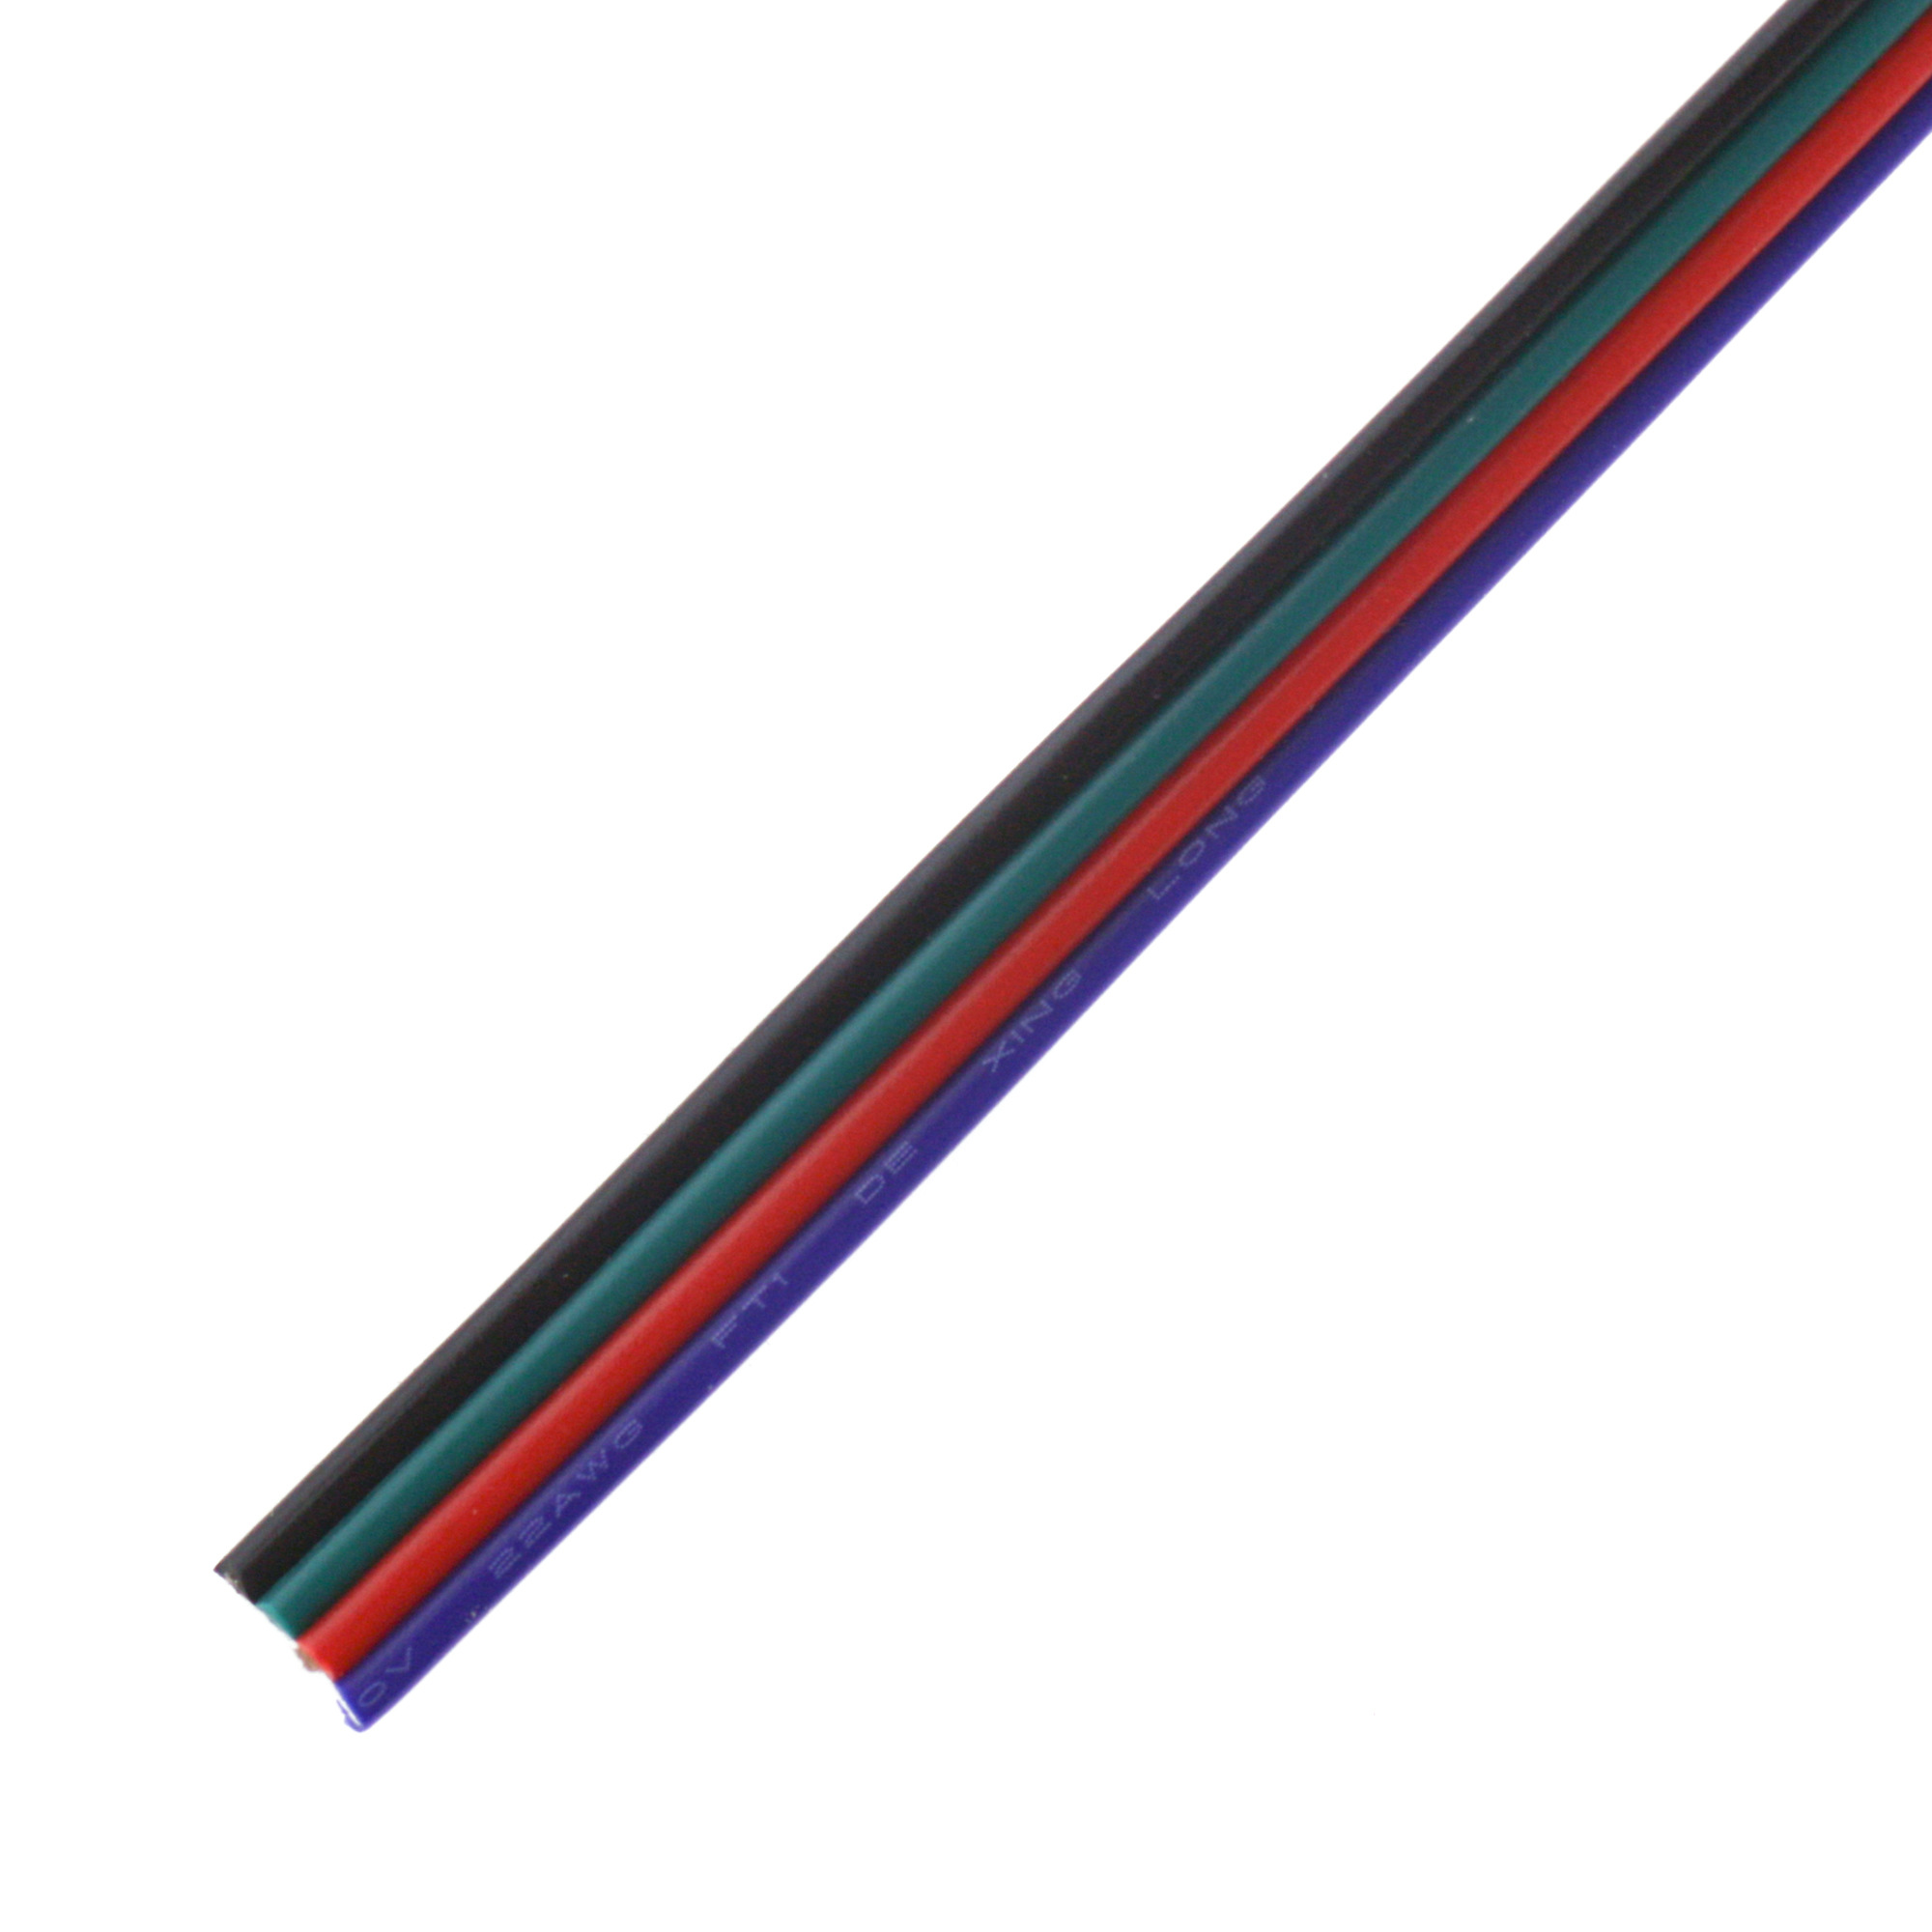 RGB connection wire - 5 meter